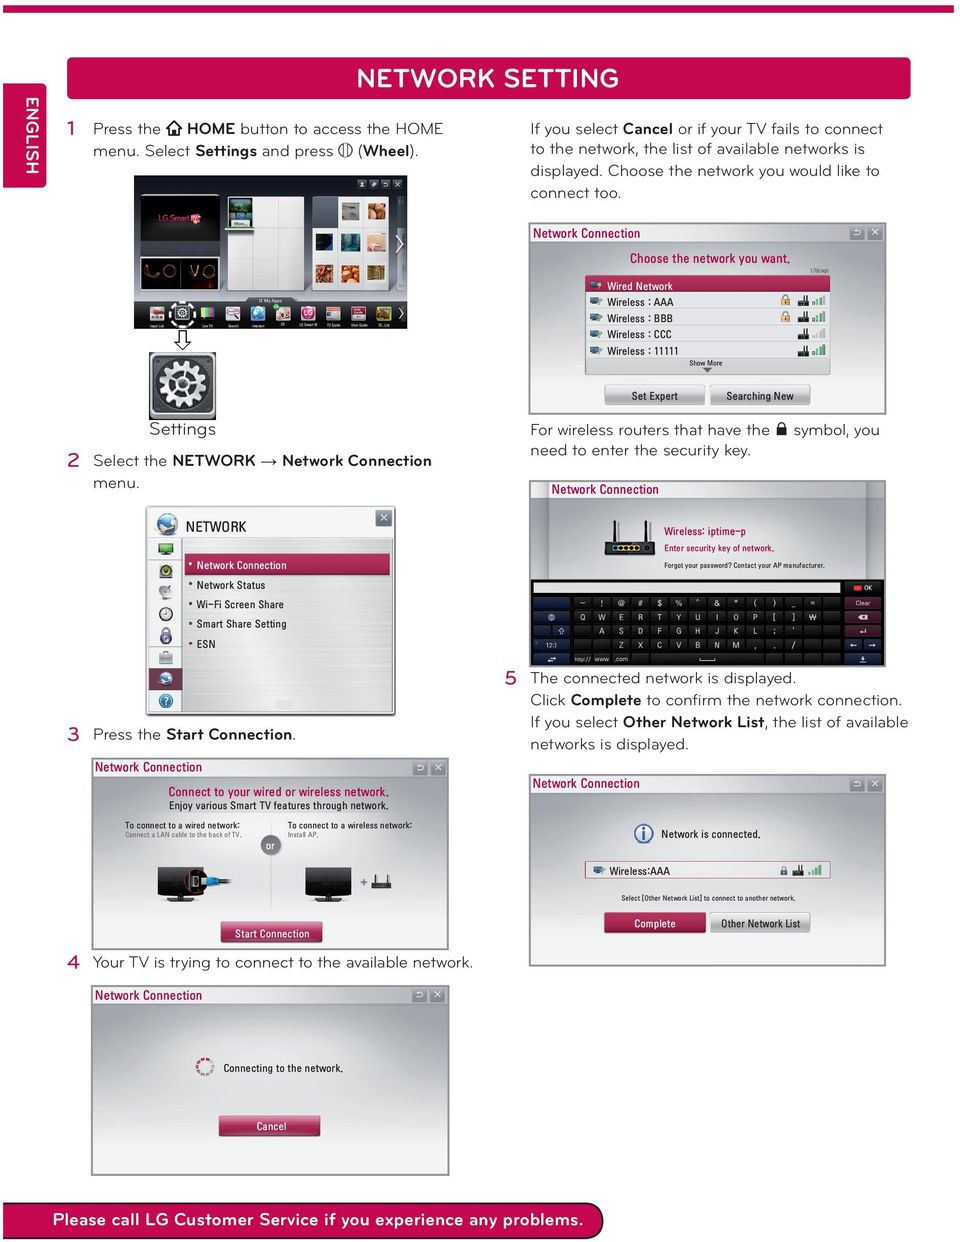 Wired Network Wireless : AAA Input List Settings Live TV Search Internet 3D LG Smart W TV Guide User Guide Ch.